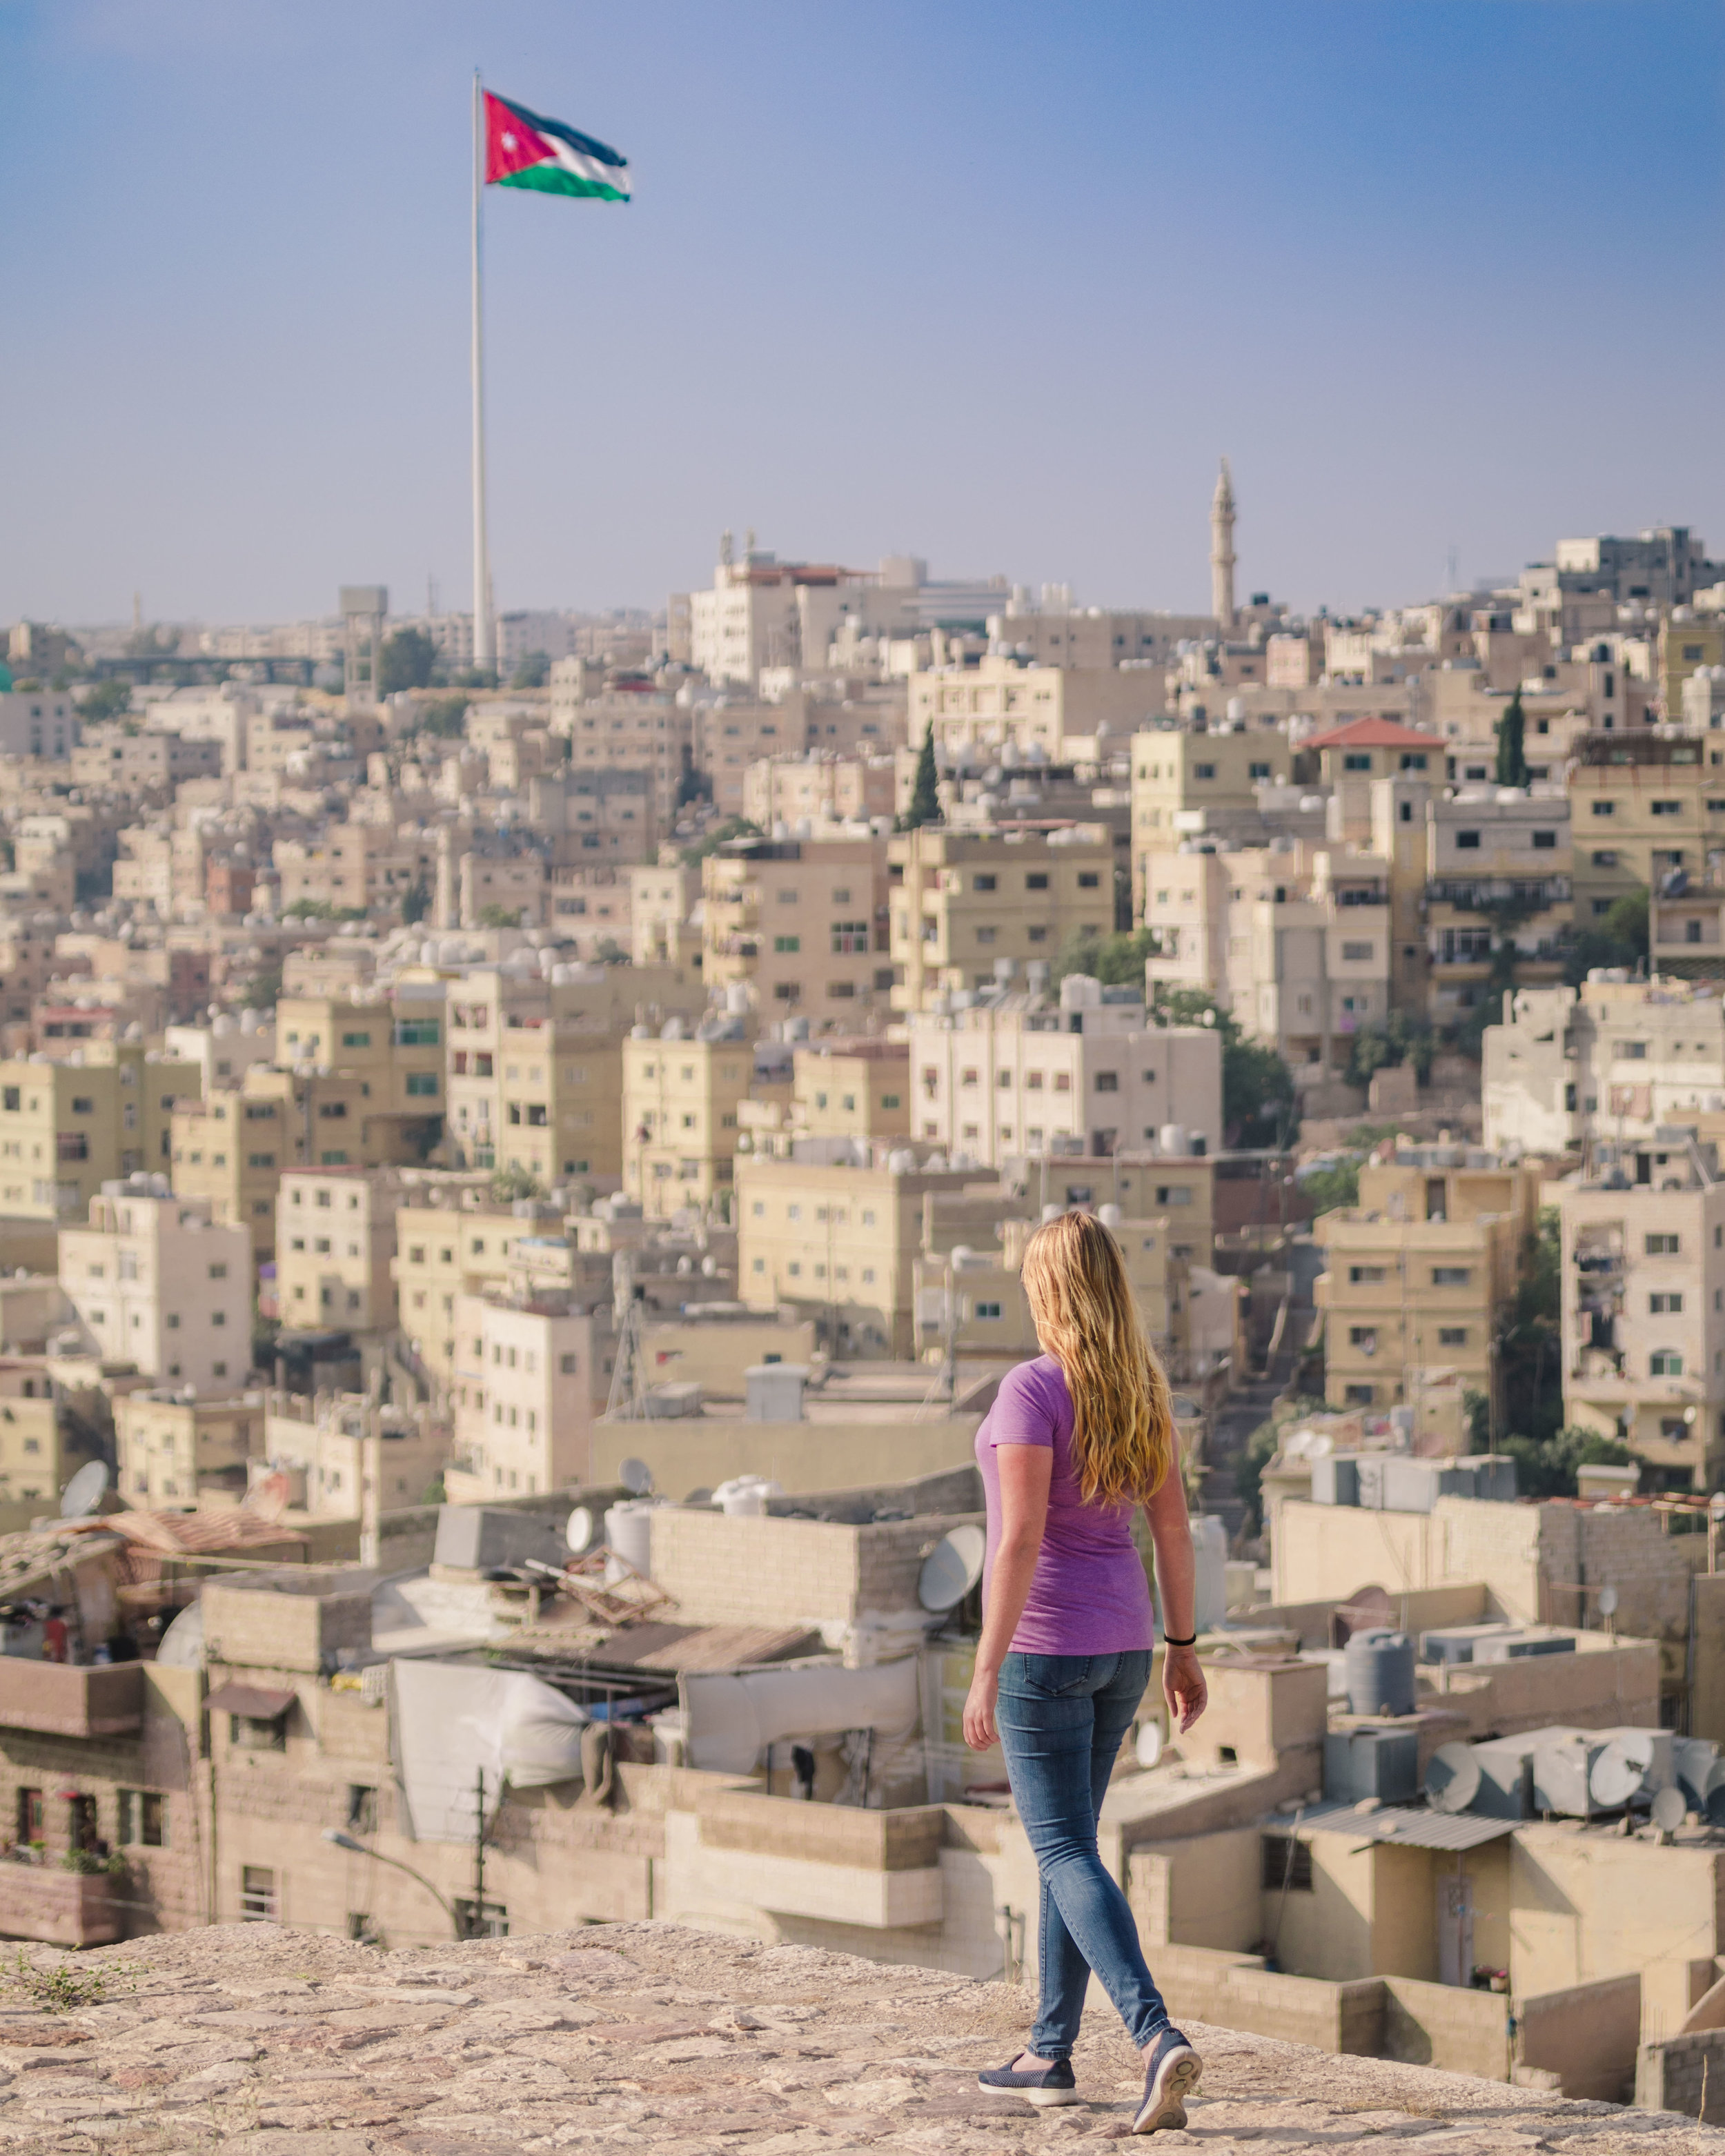 Instagrammable Jordan - City Skyline of Amman